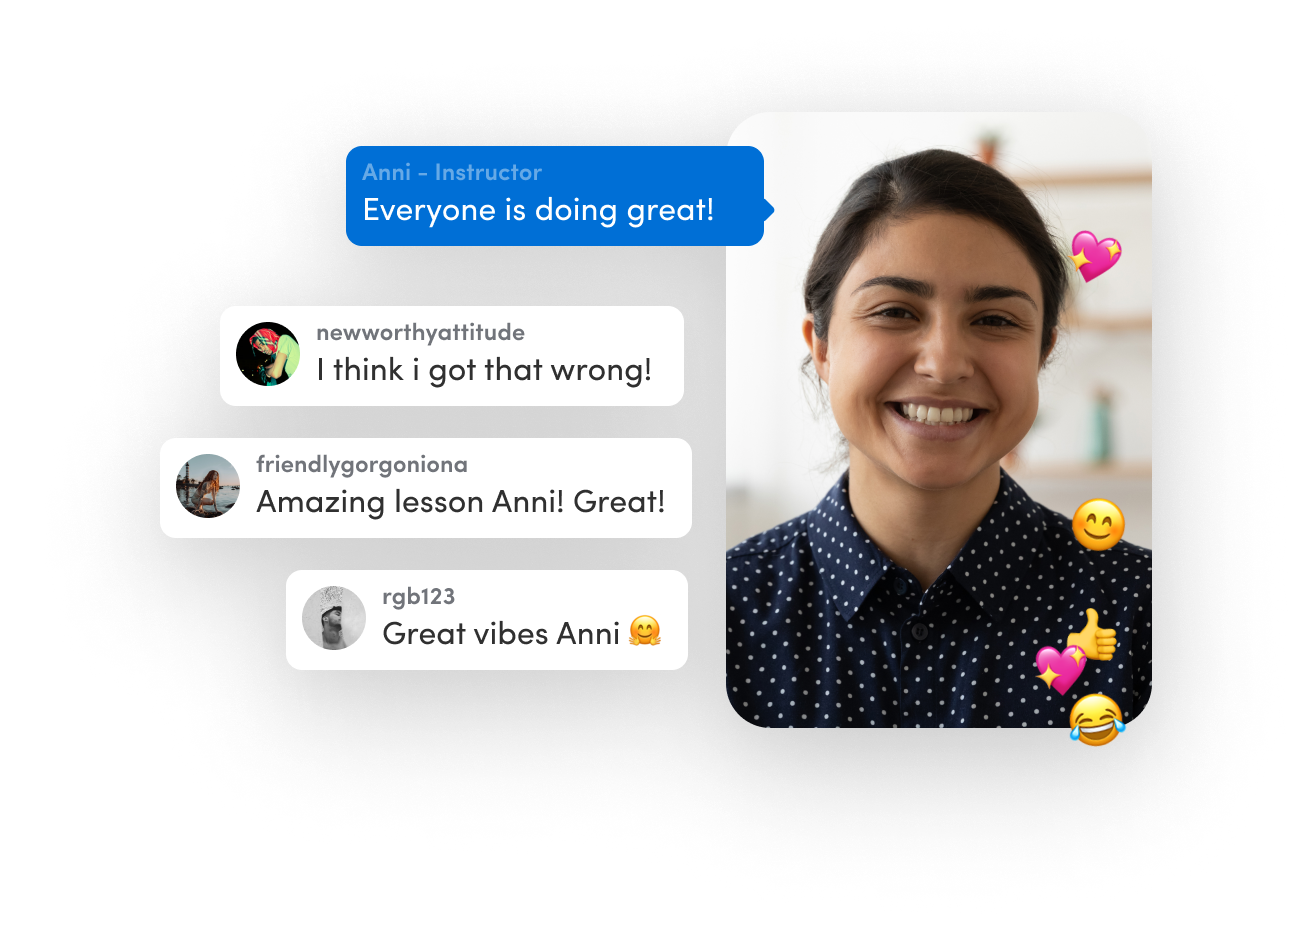 Real-time chat & reactions